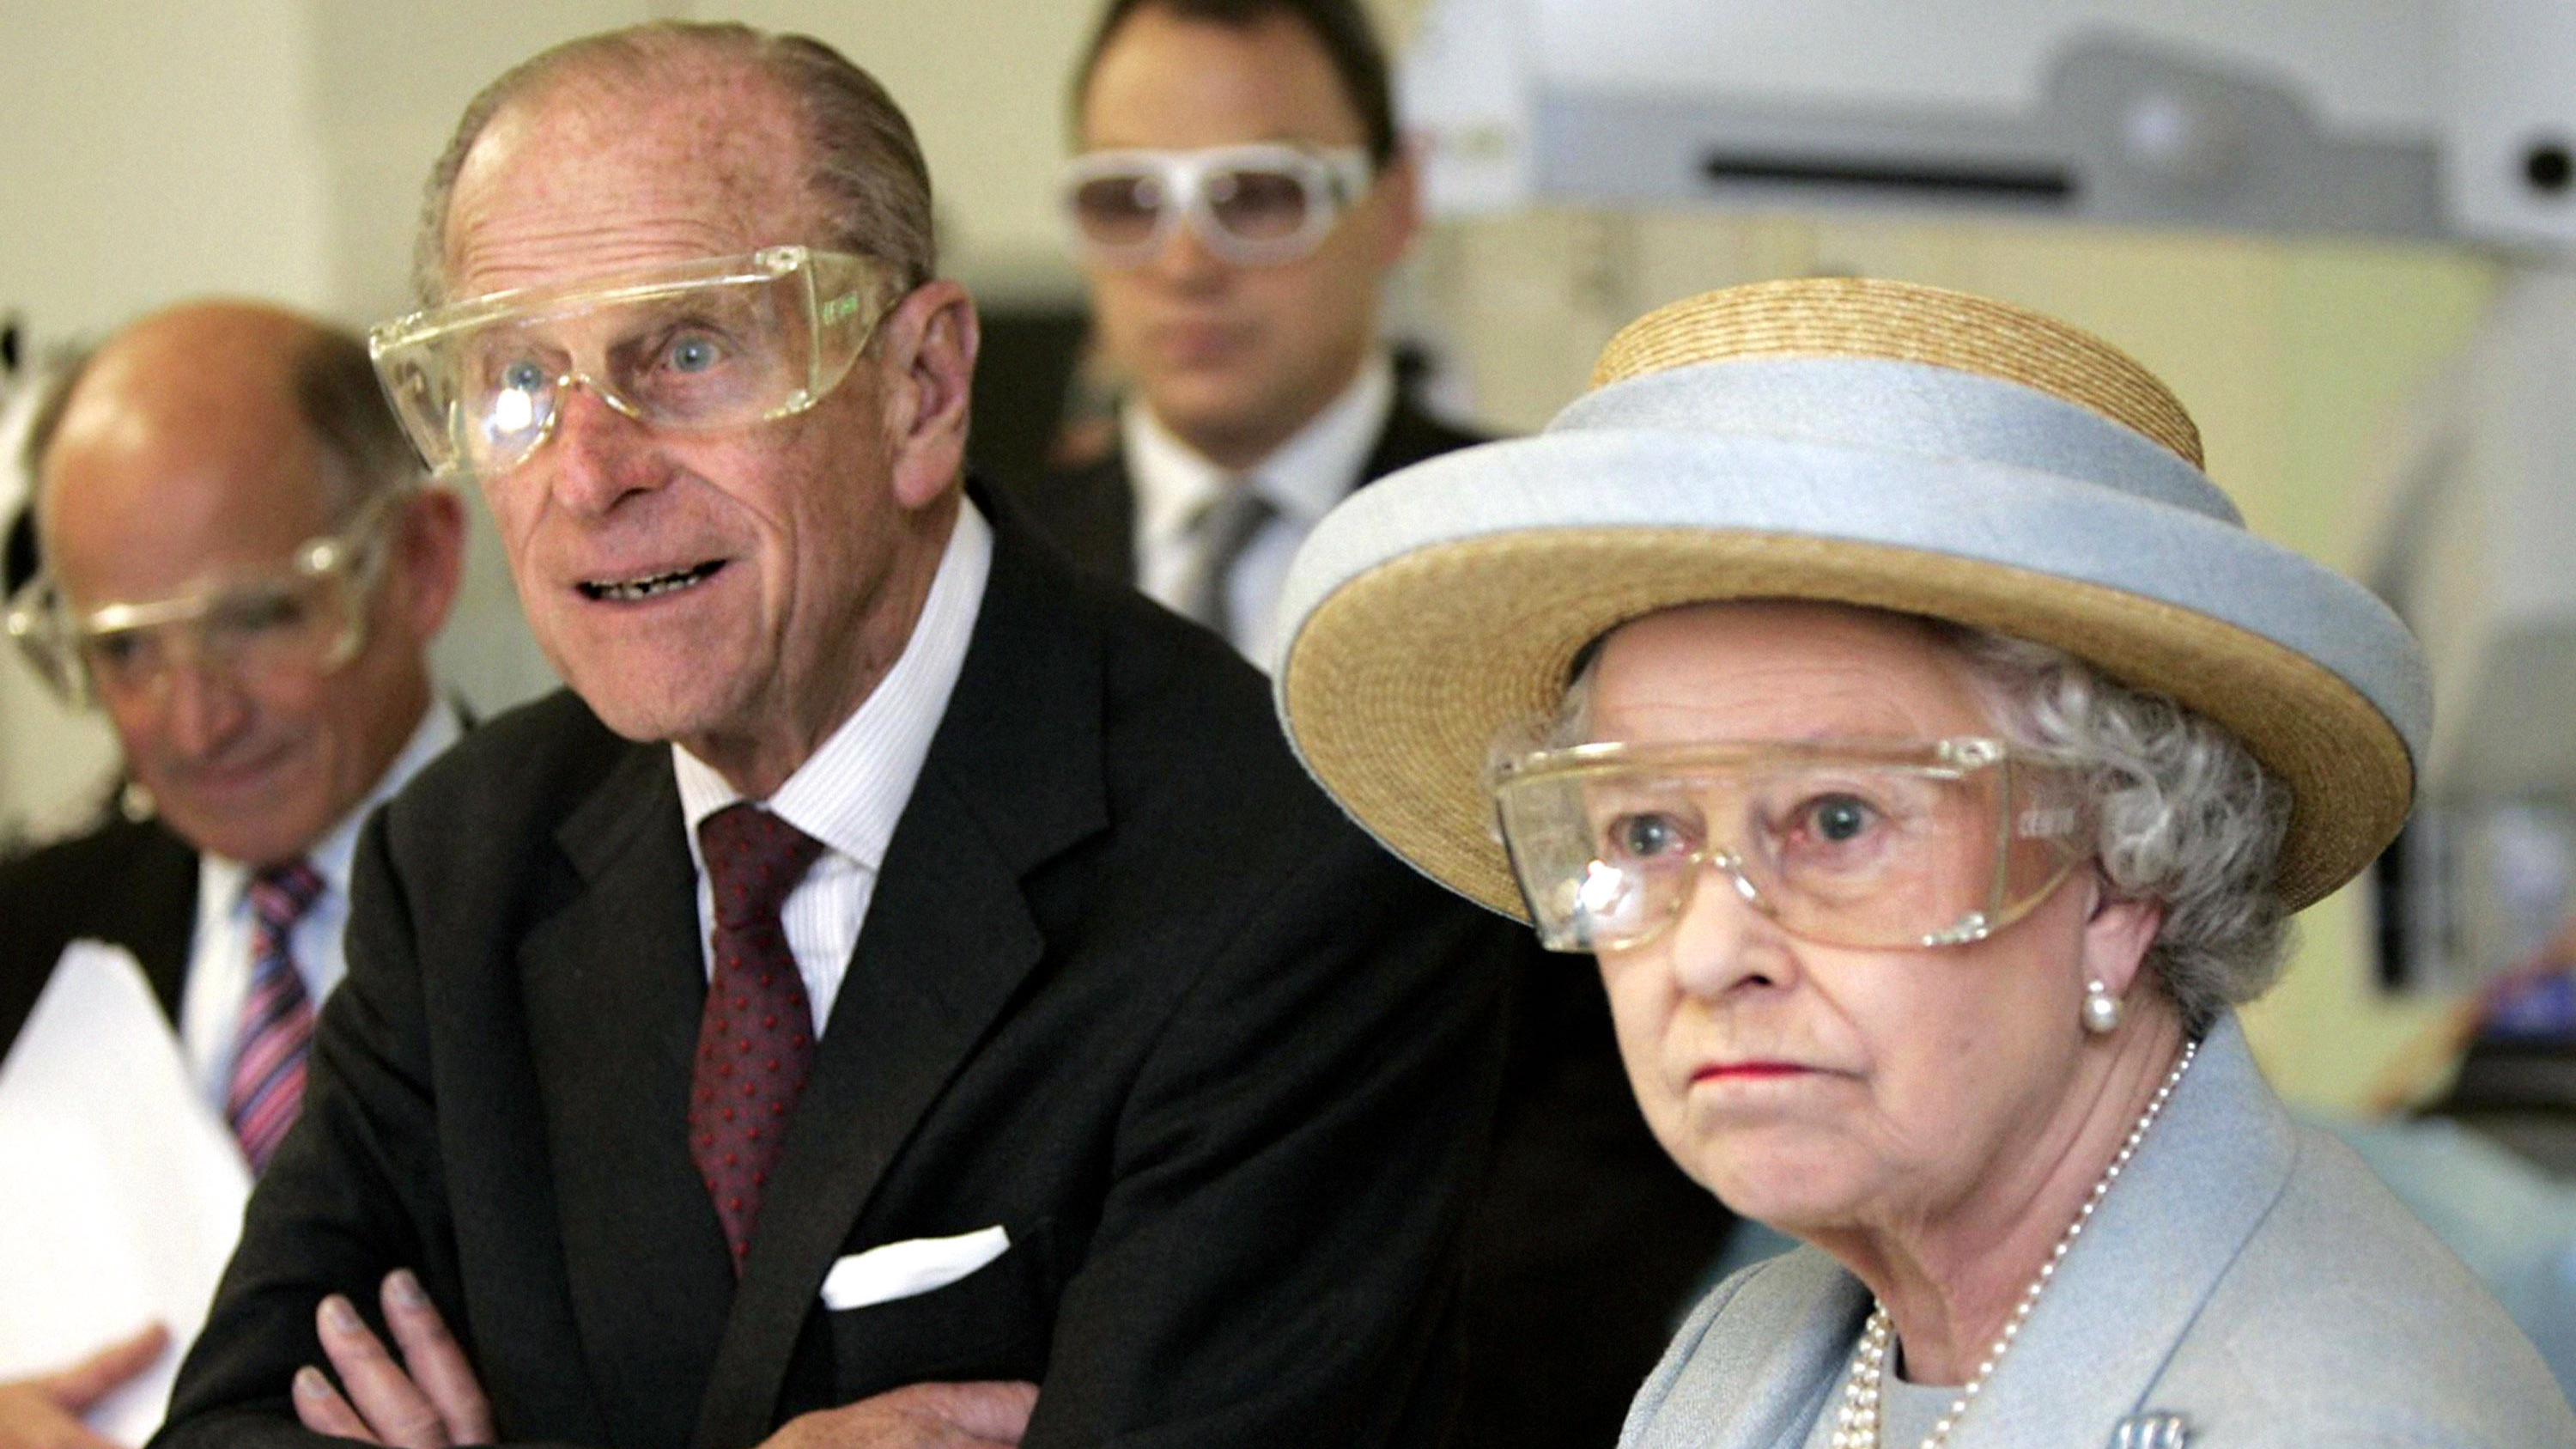 Prince Phillip Makes Another Public Gaffe About Man With Beard